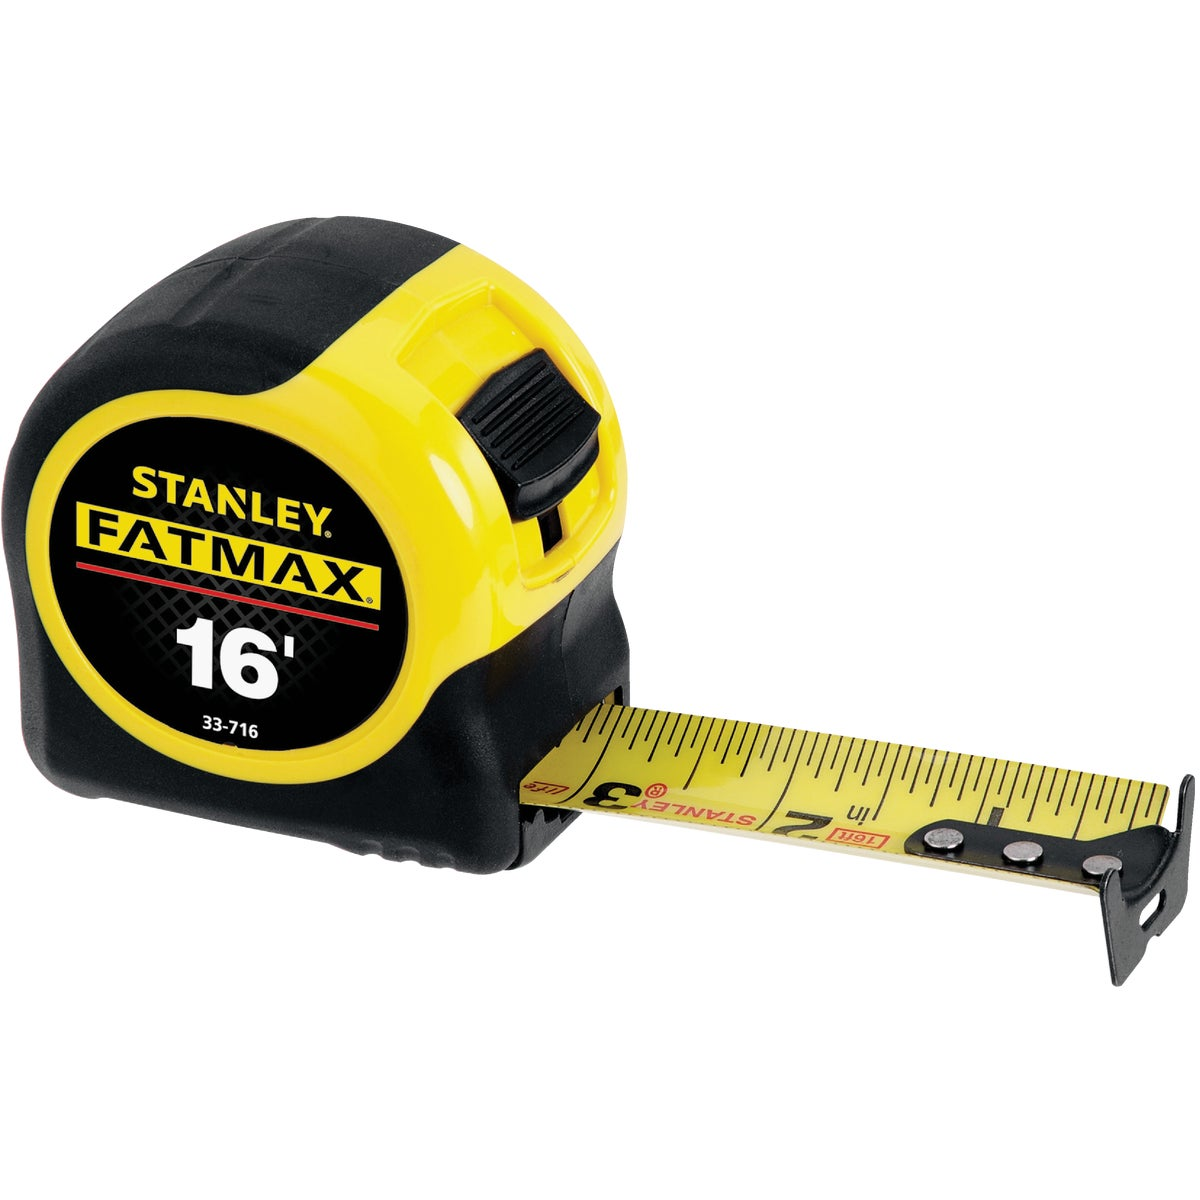 "1-1/4""X16' TAPE RULE - 33-716 by Stanley Tools"